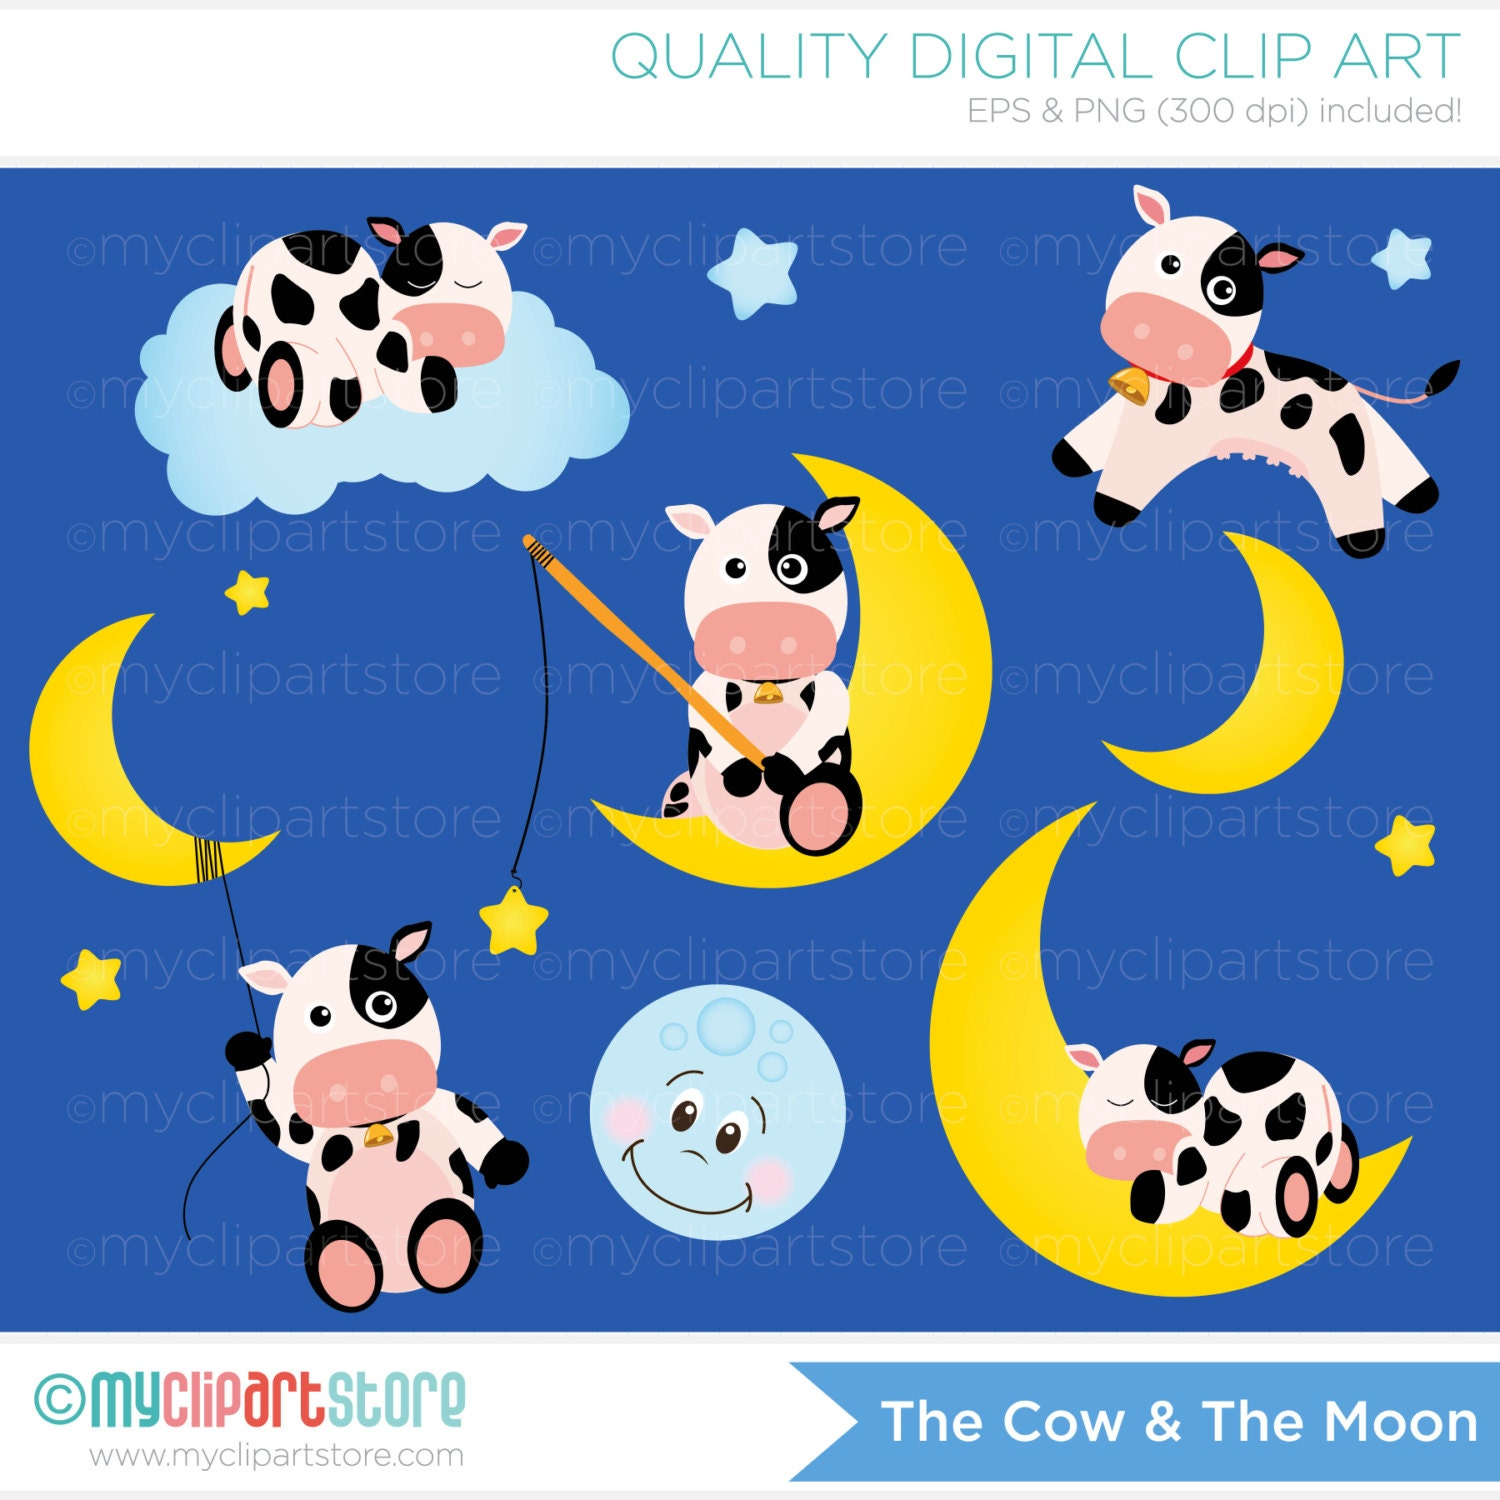 Displaying (20) Gallery Images For Cow Jumped Over The Moon Clipart...